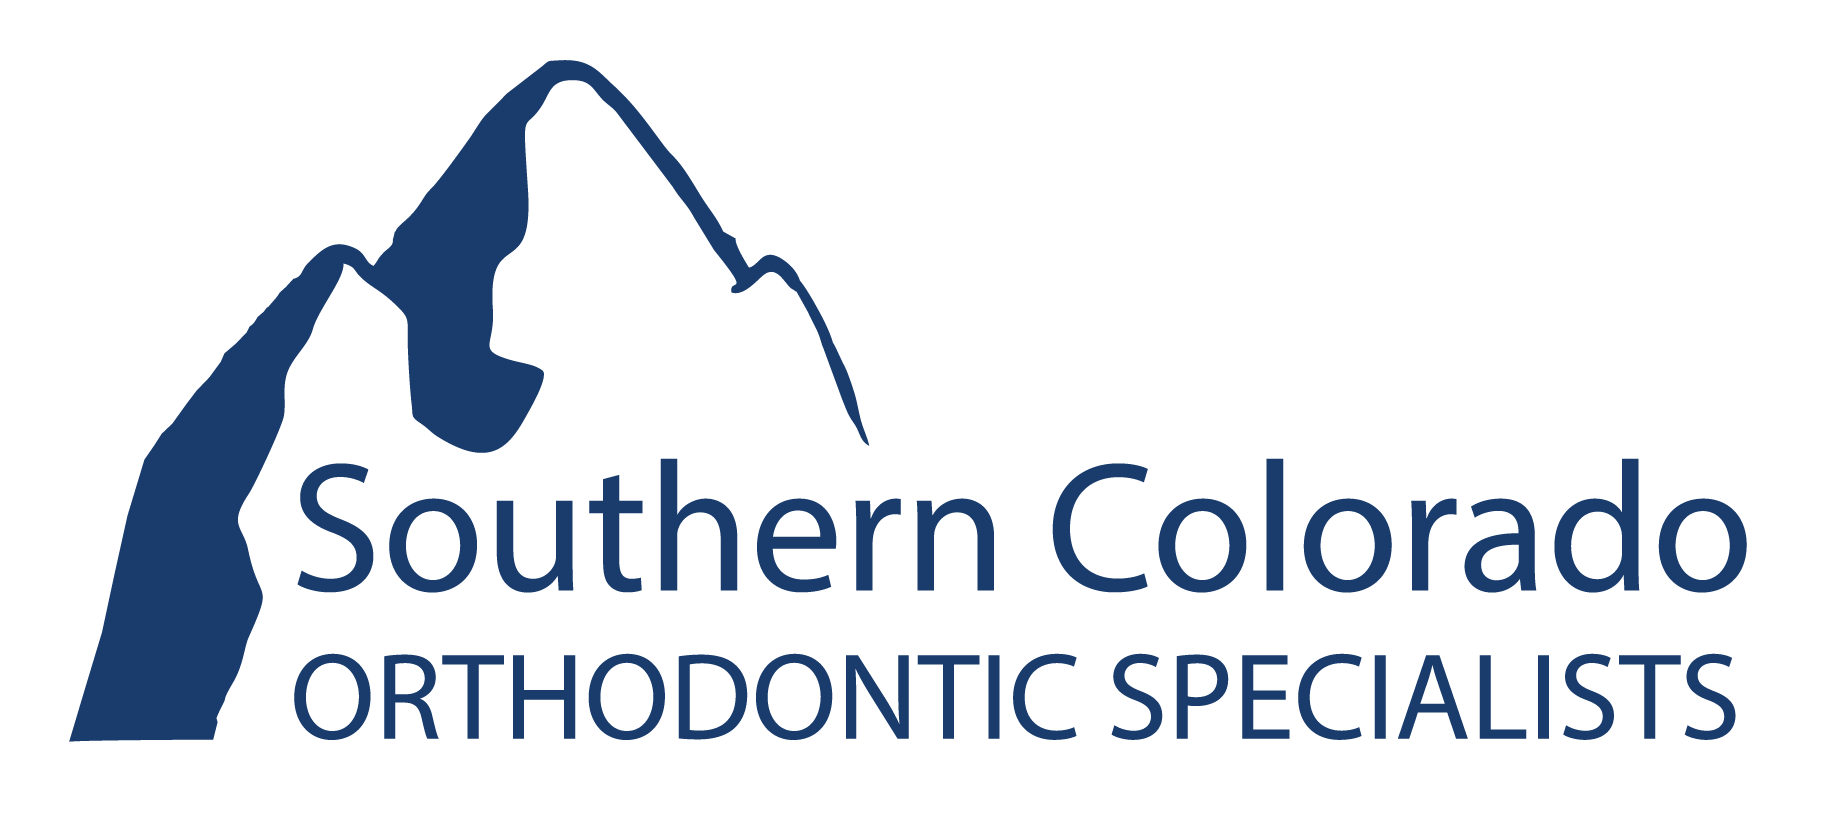 Southern Colorado Orthodontic Specialists